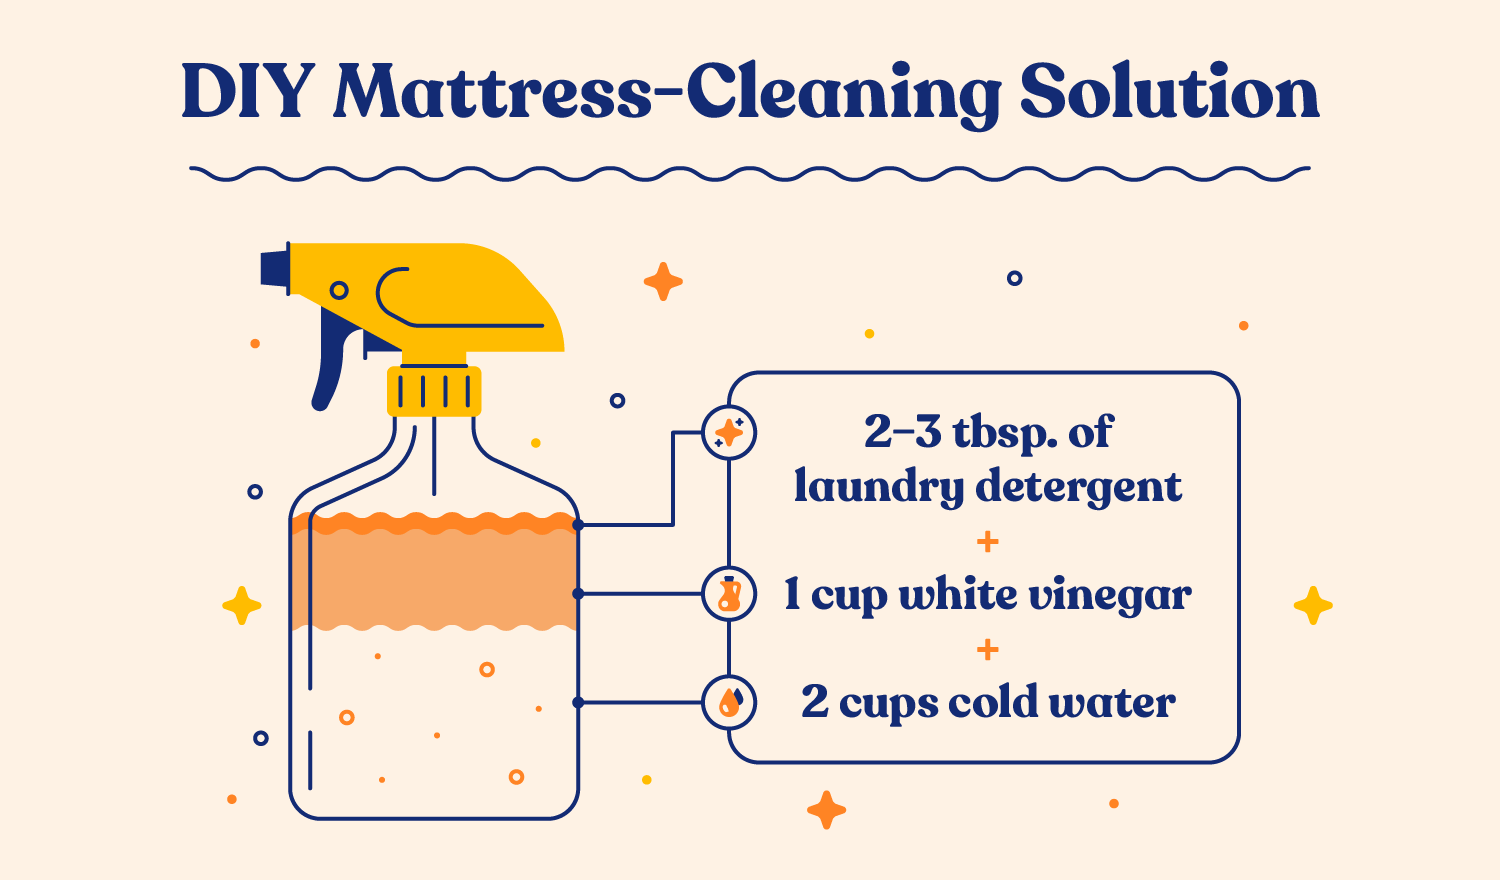 diy-mattress-cleaning-solution